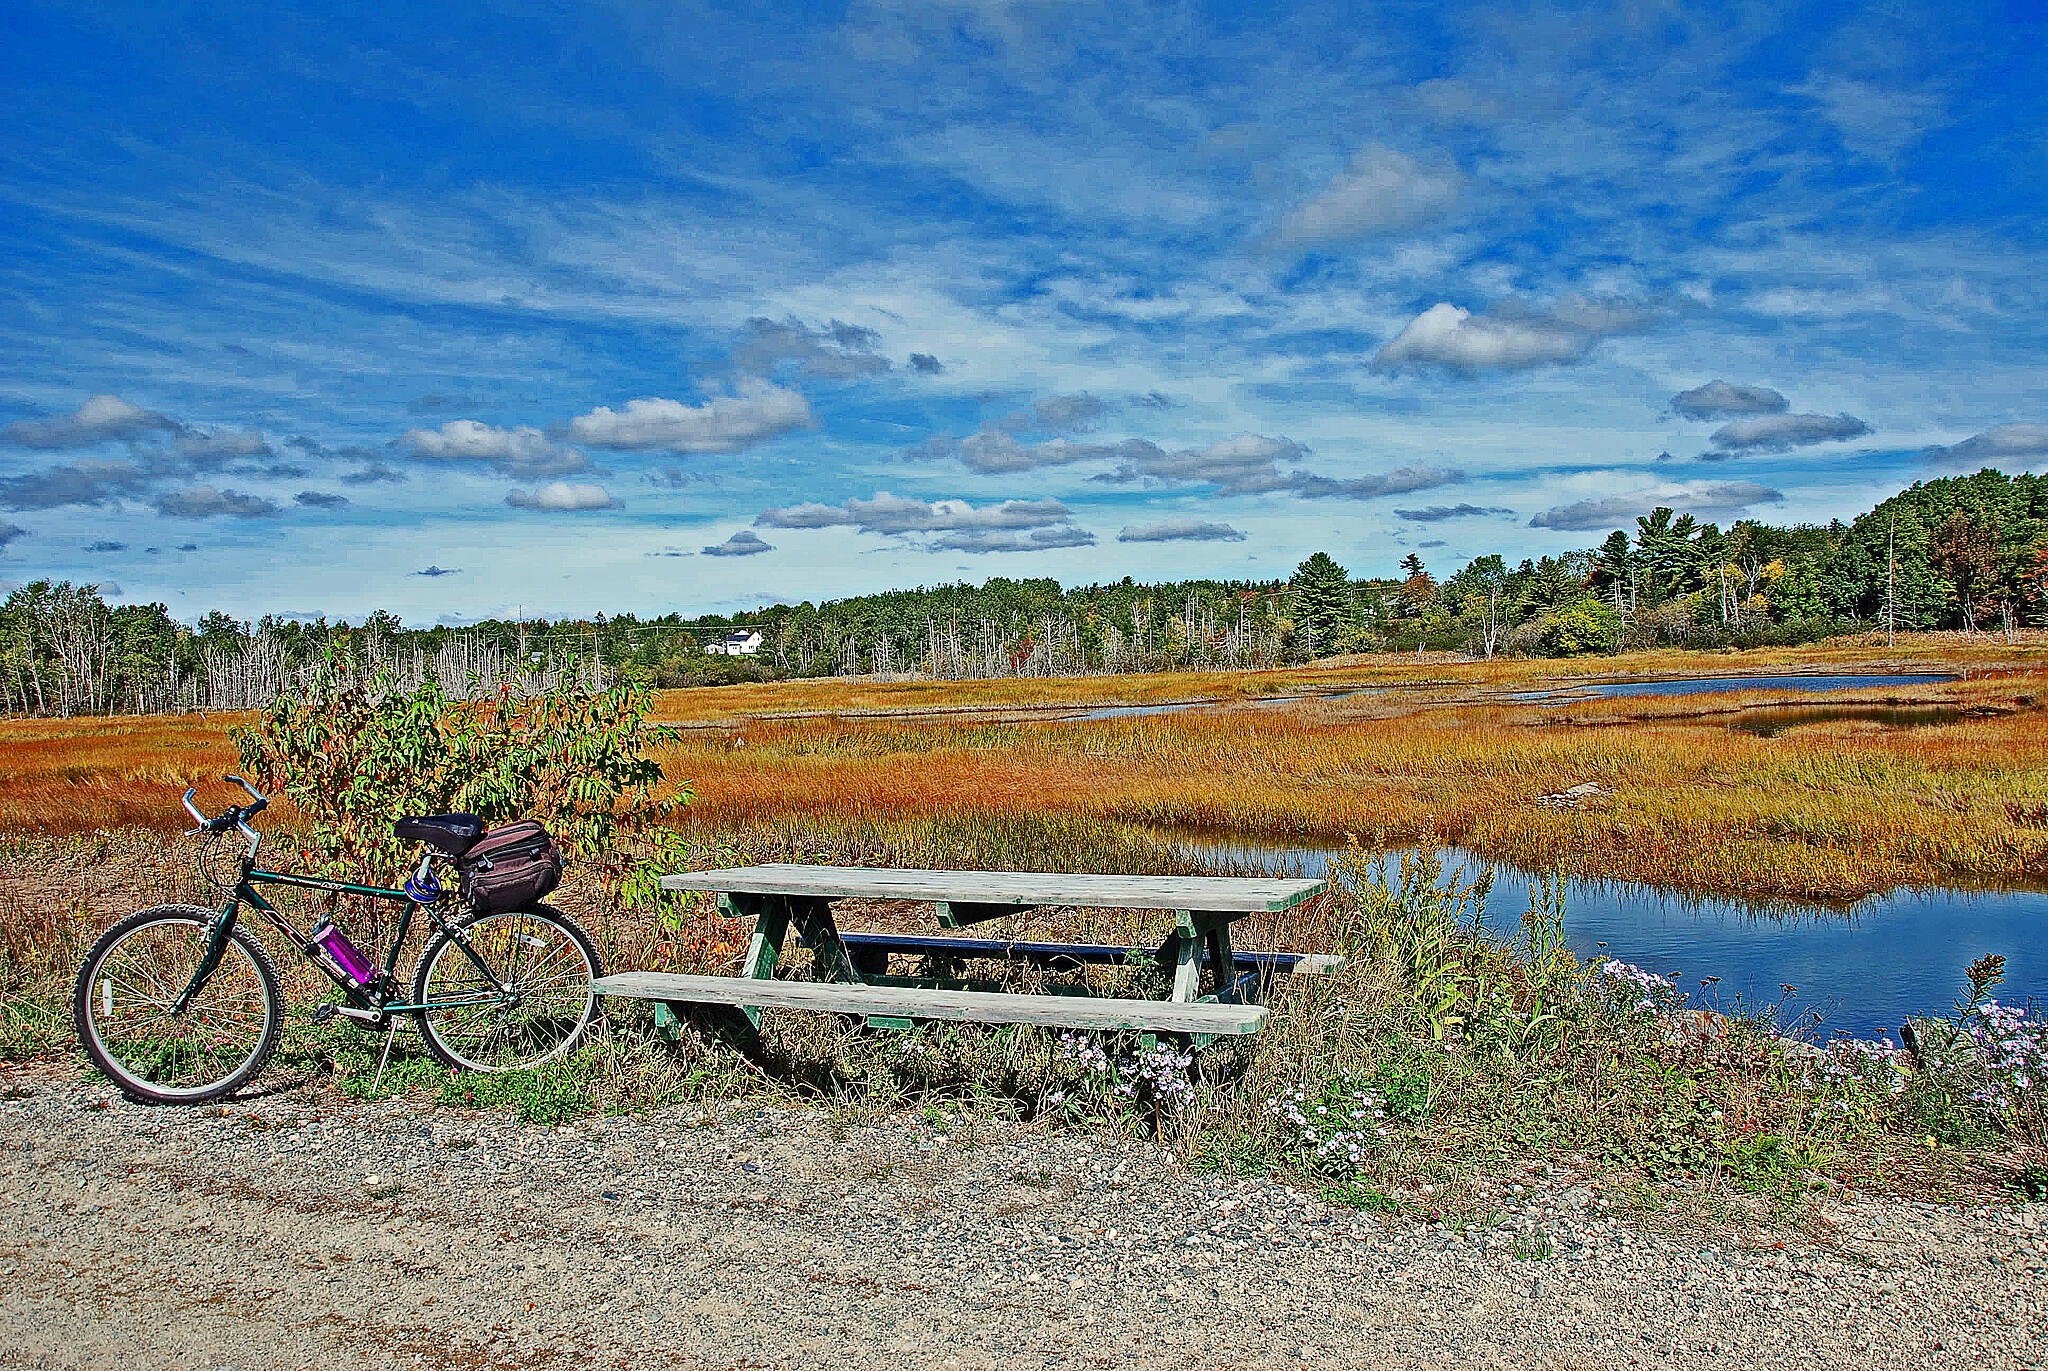 Down East Sunrise Trail Machias, ME September 2016. A scenic lunch spot along the trail.